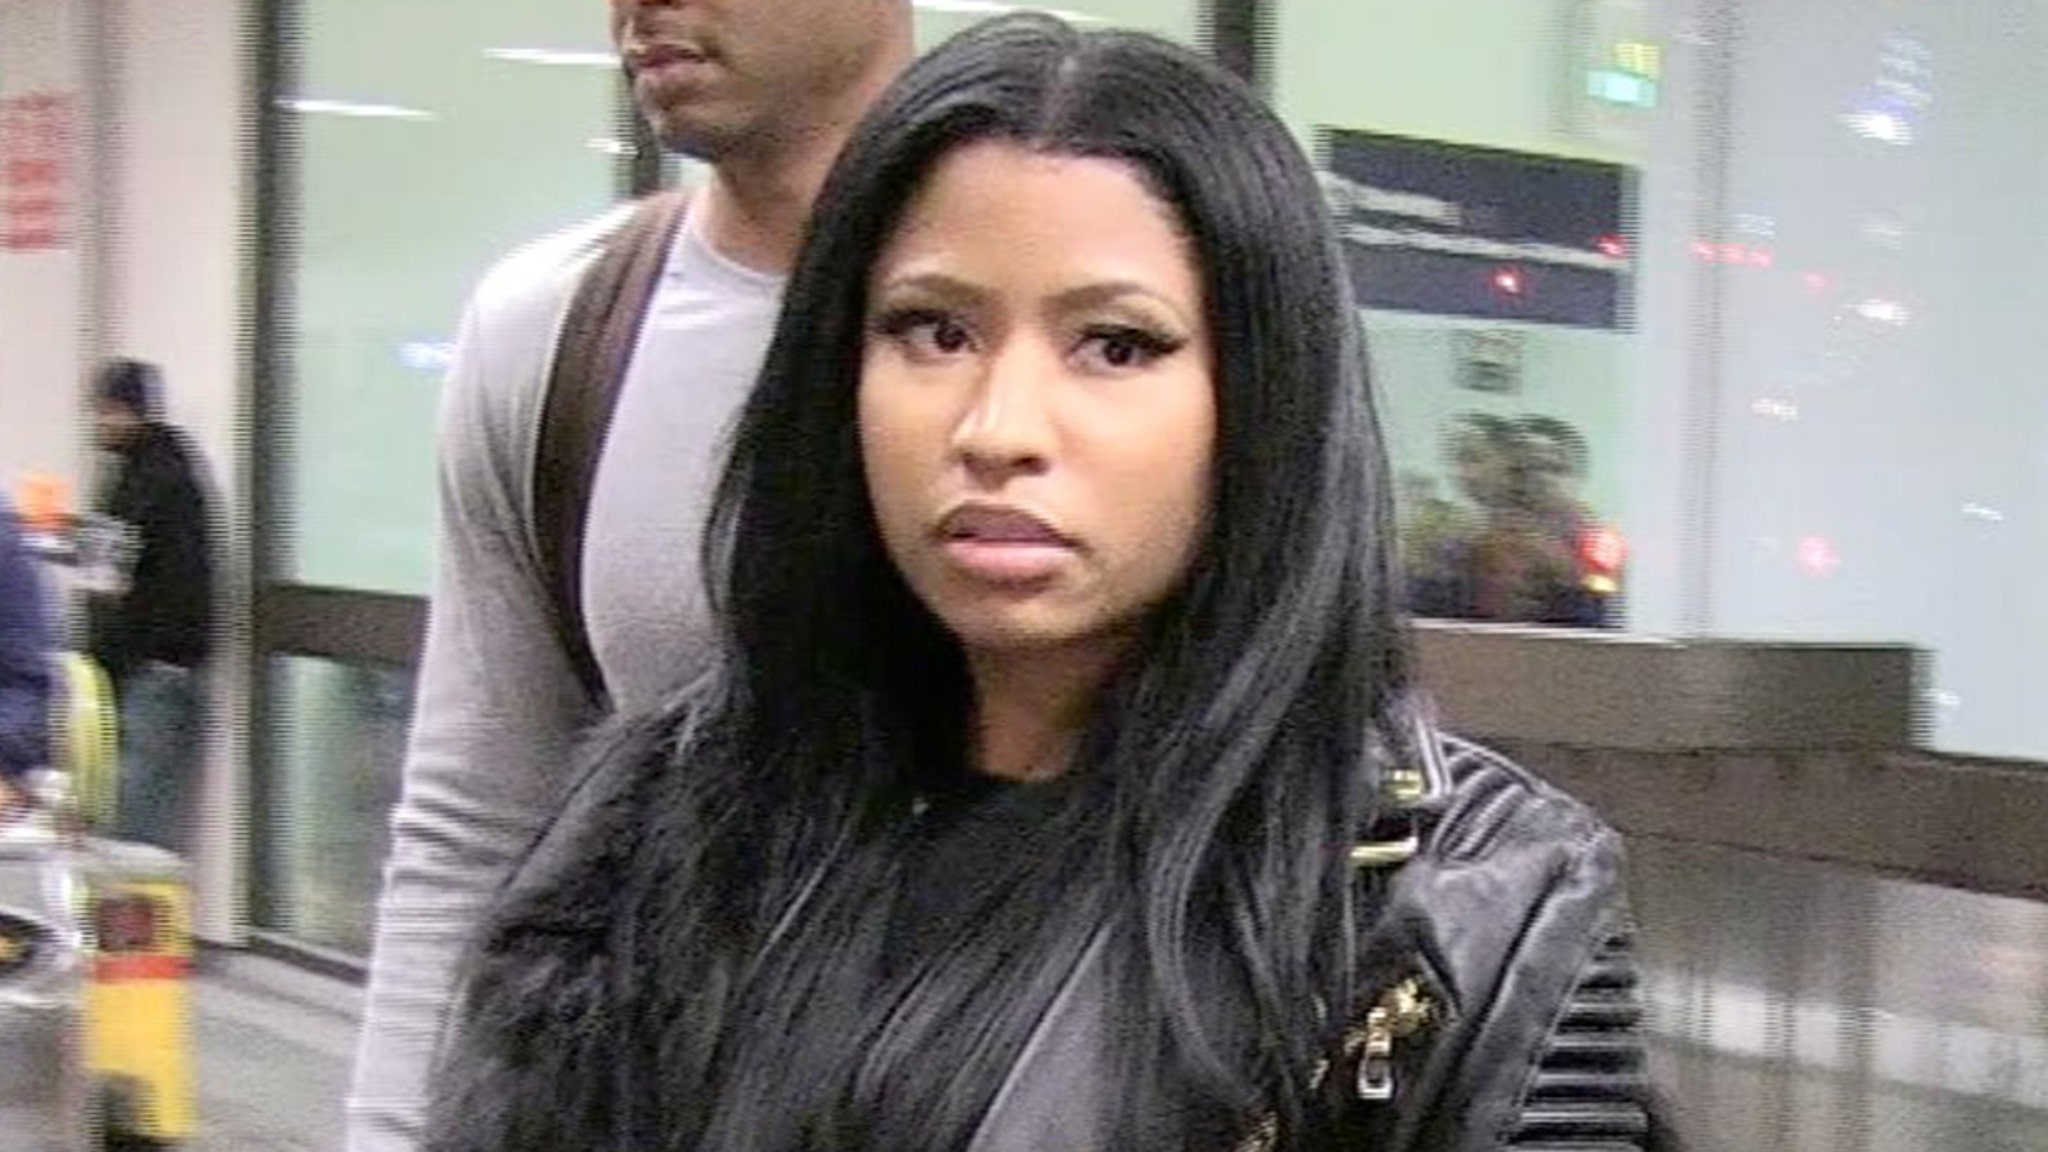 Nicki Minaj Fires Back at Haters of Her COVID-19 Vaccine Stance thumbnail